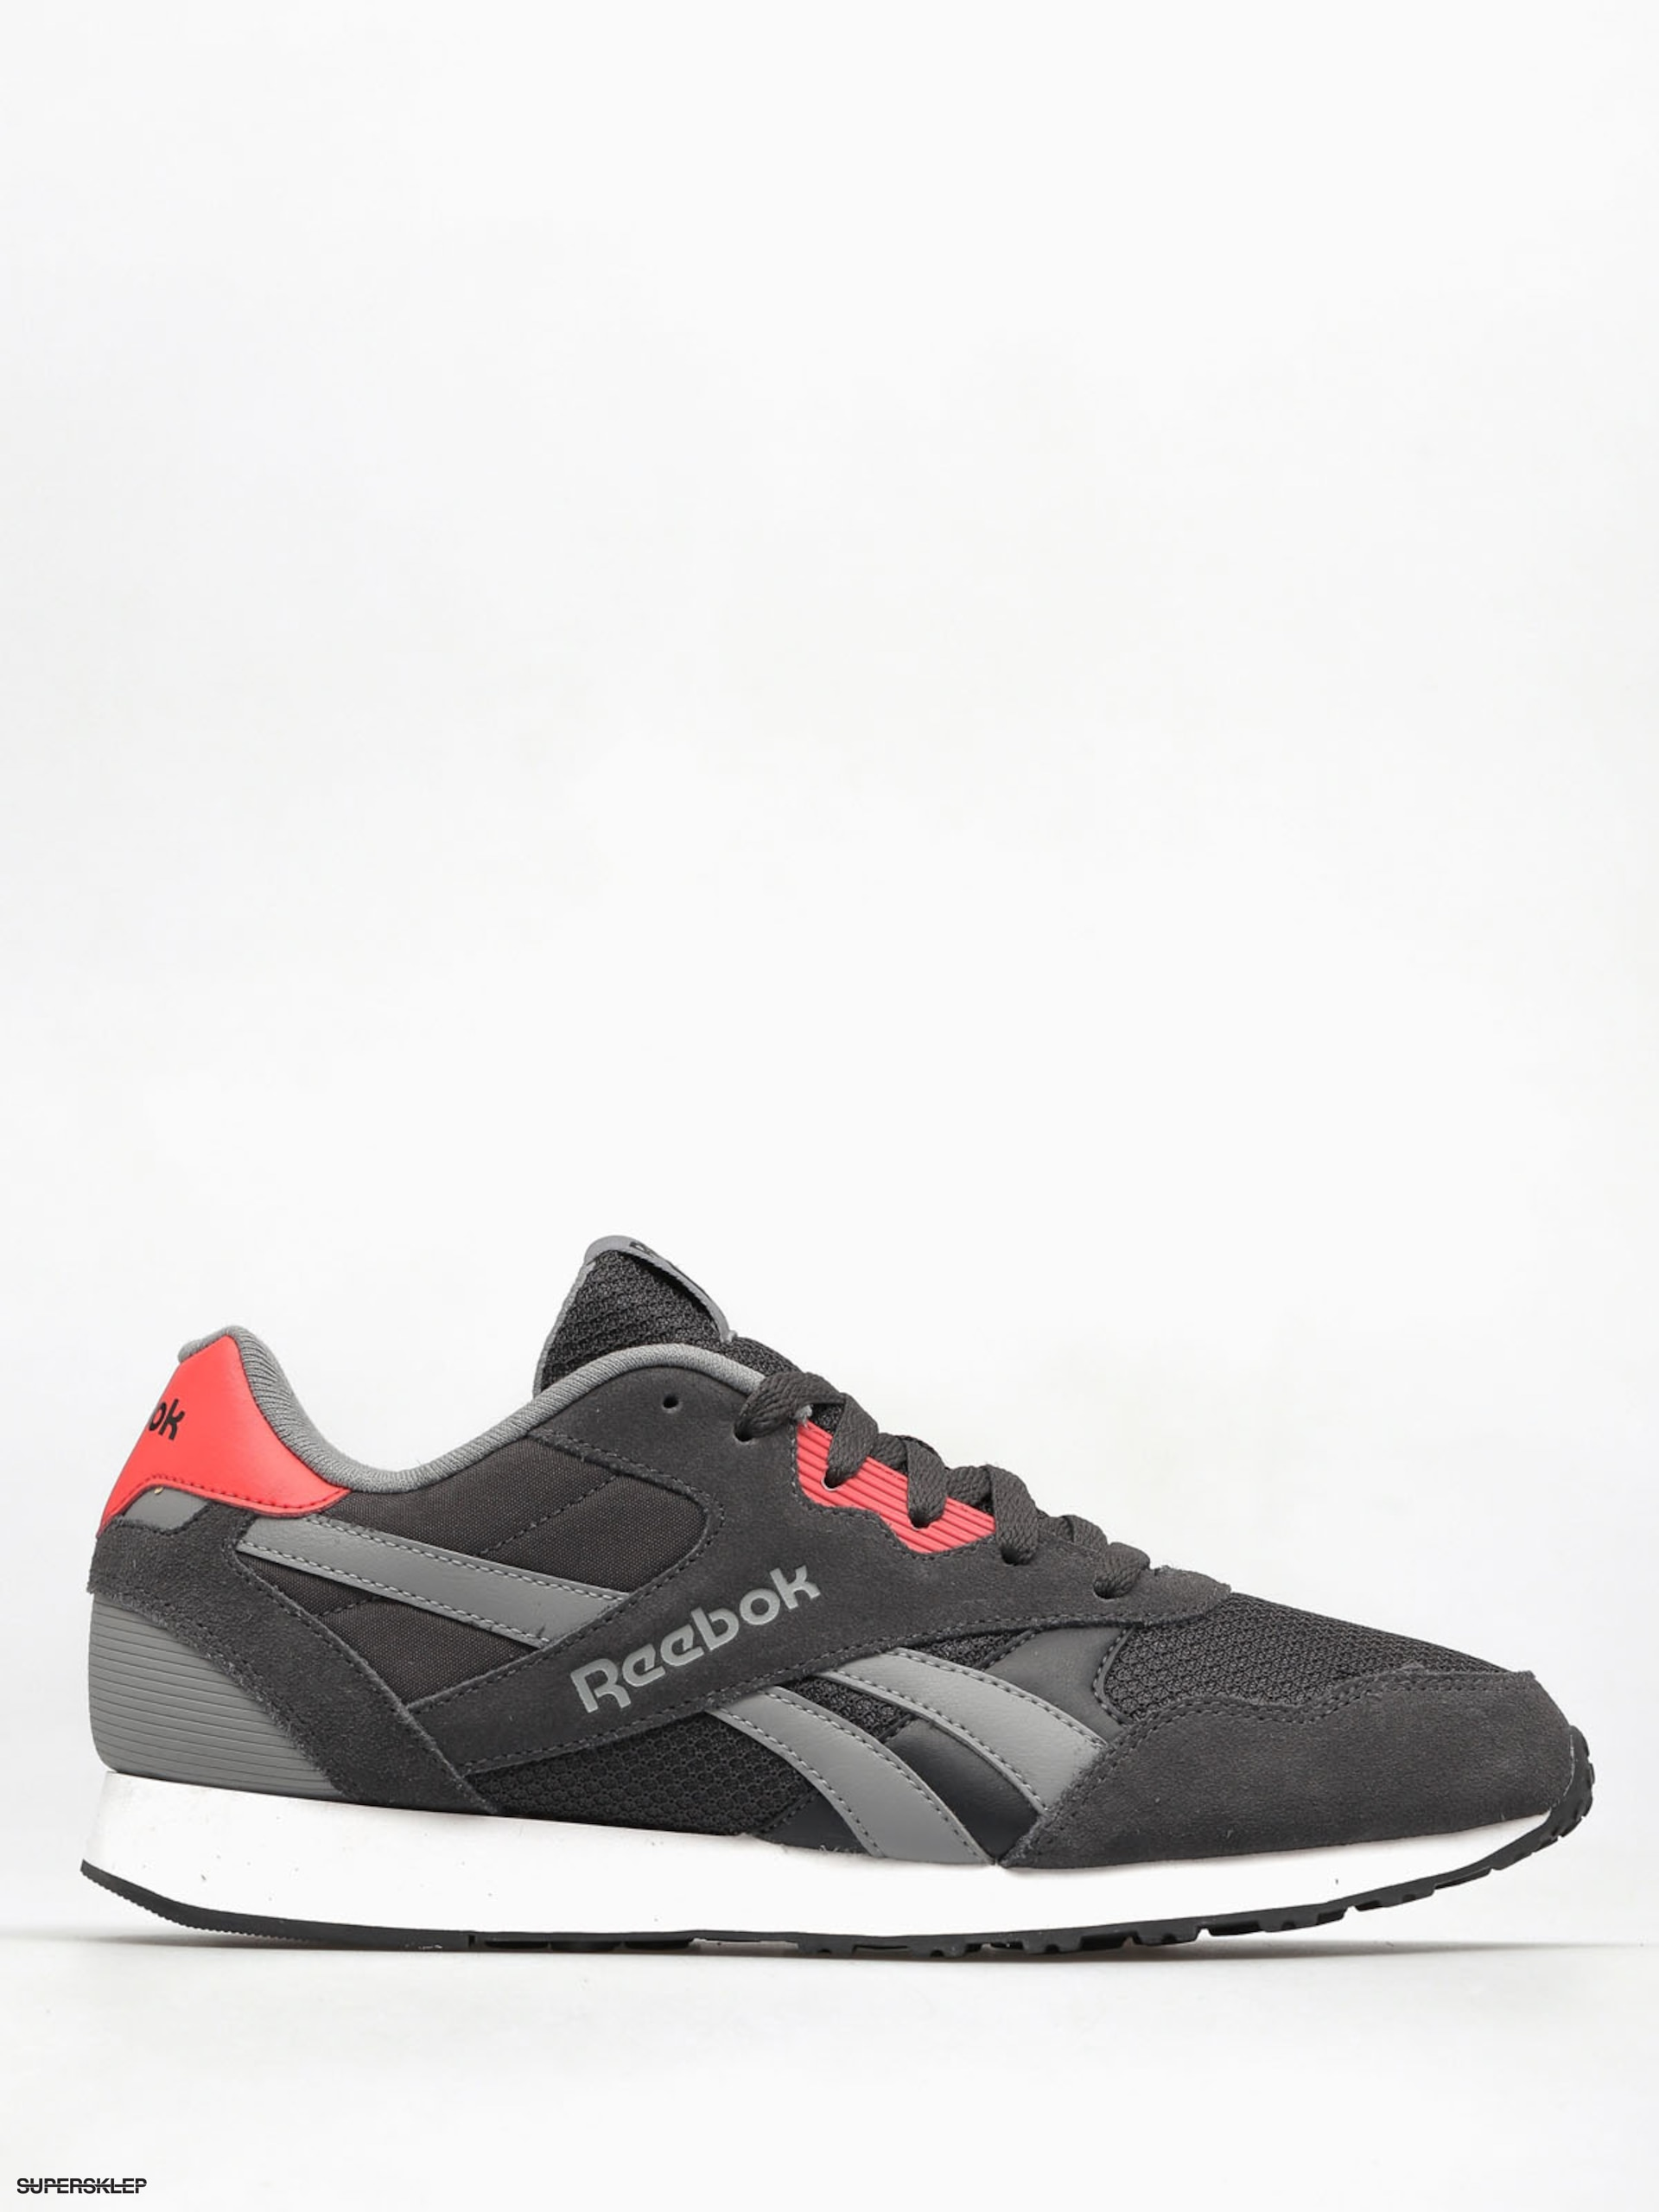 Reebok Boty Royal Tempo (hs coal/f gry/red/blk/wht)